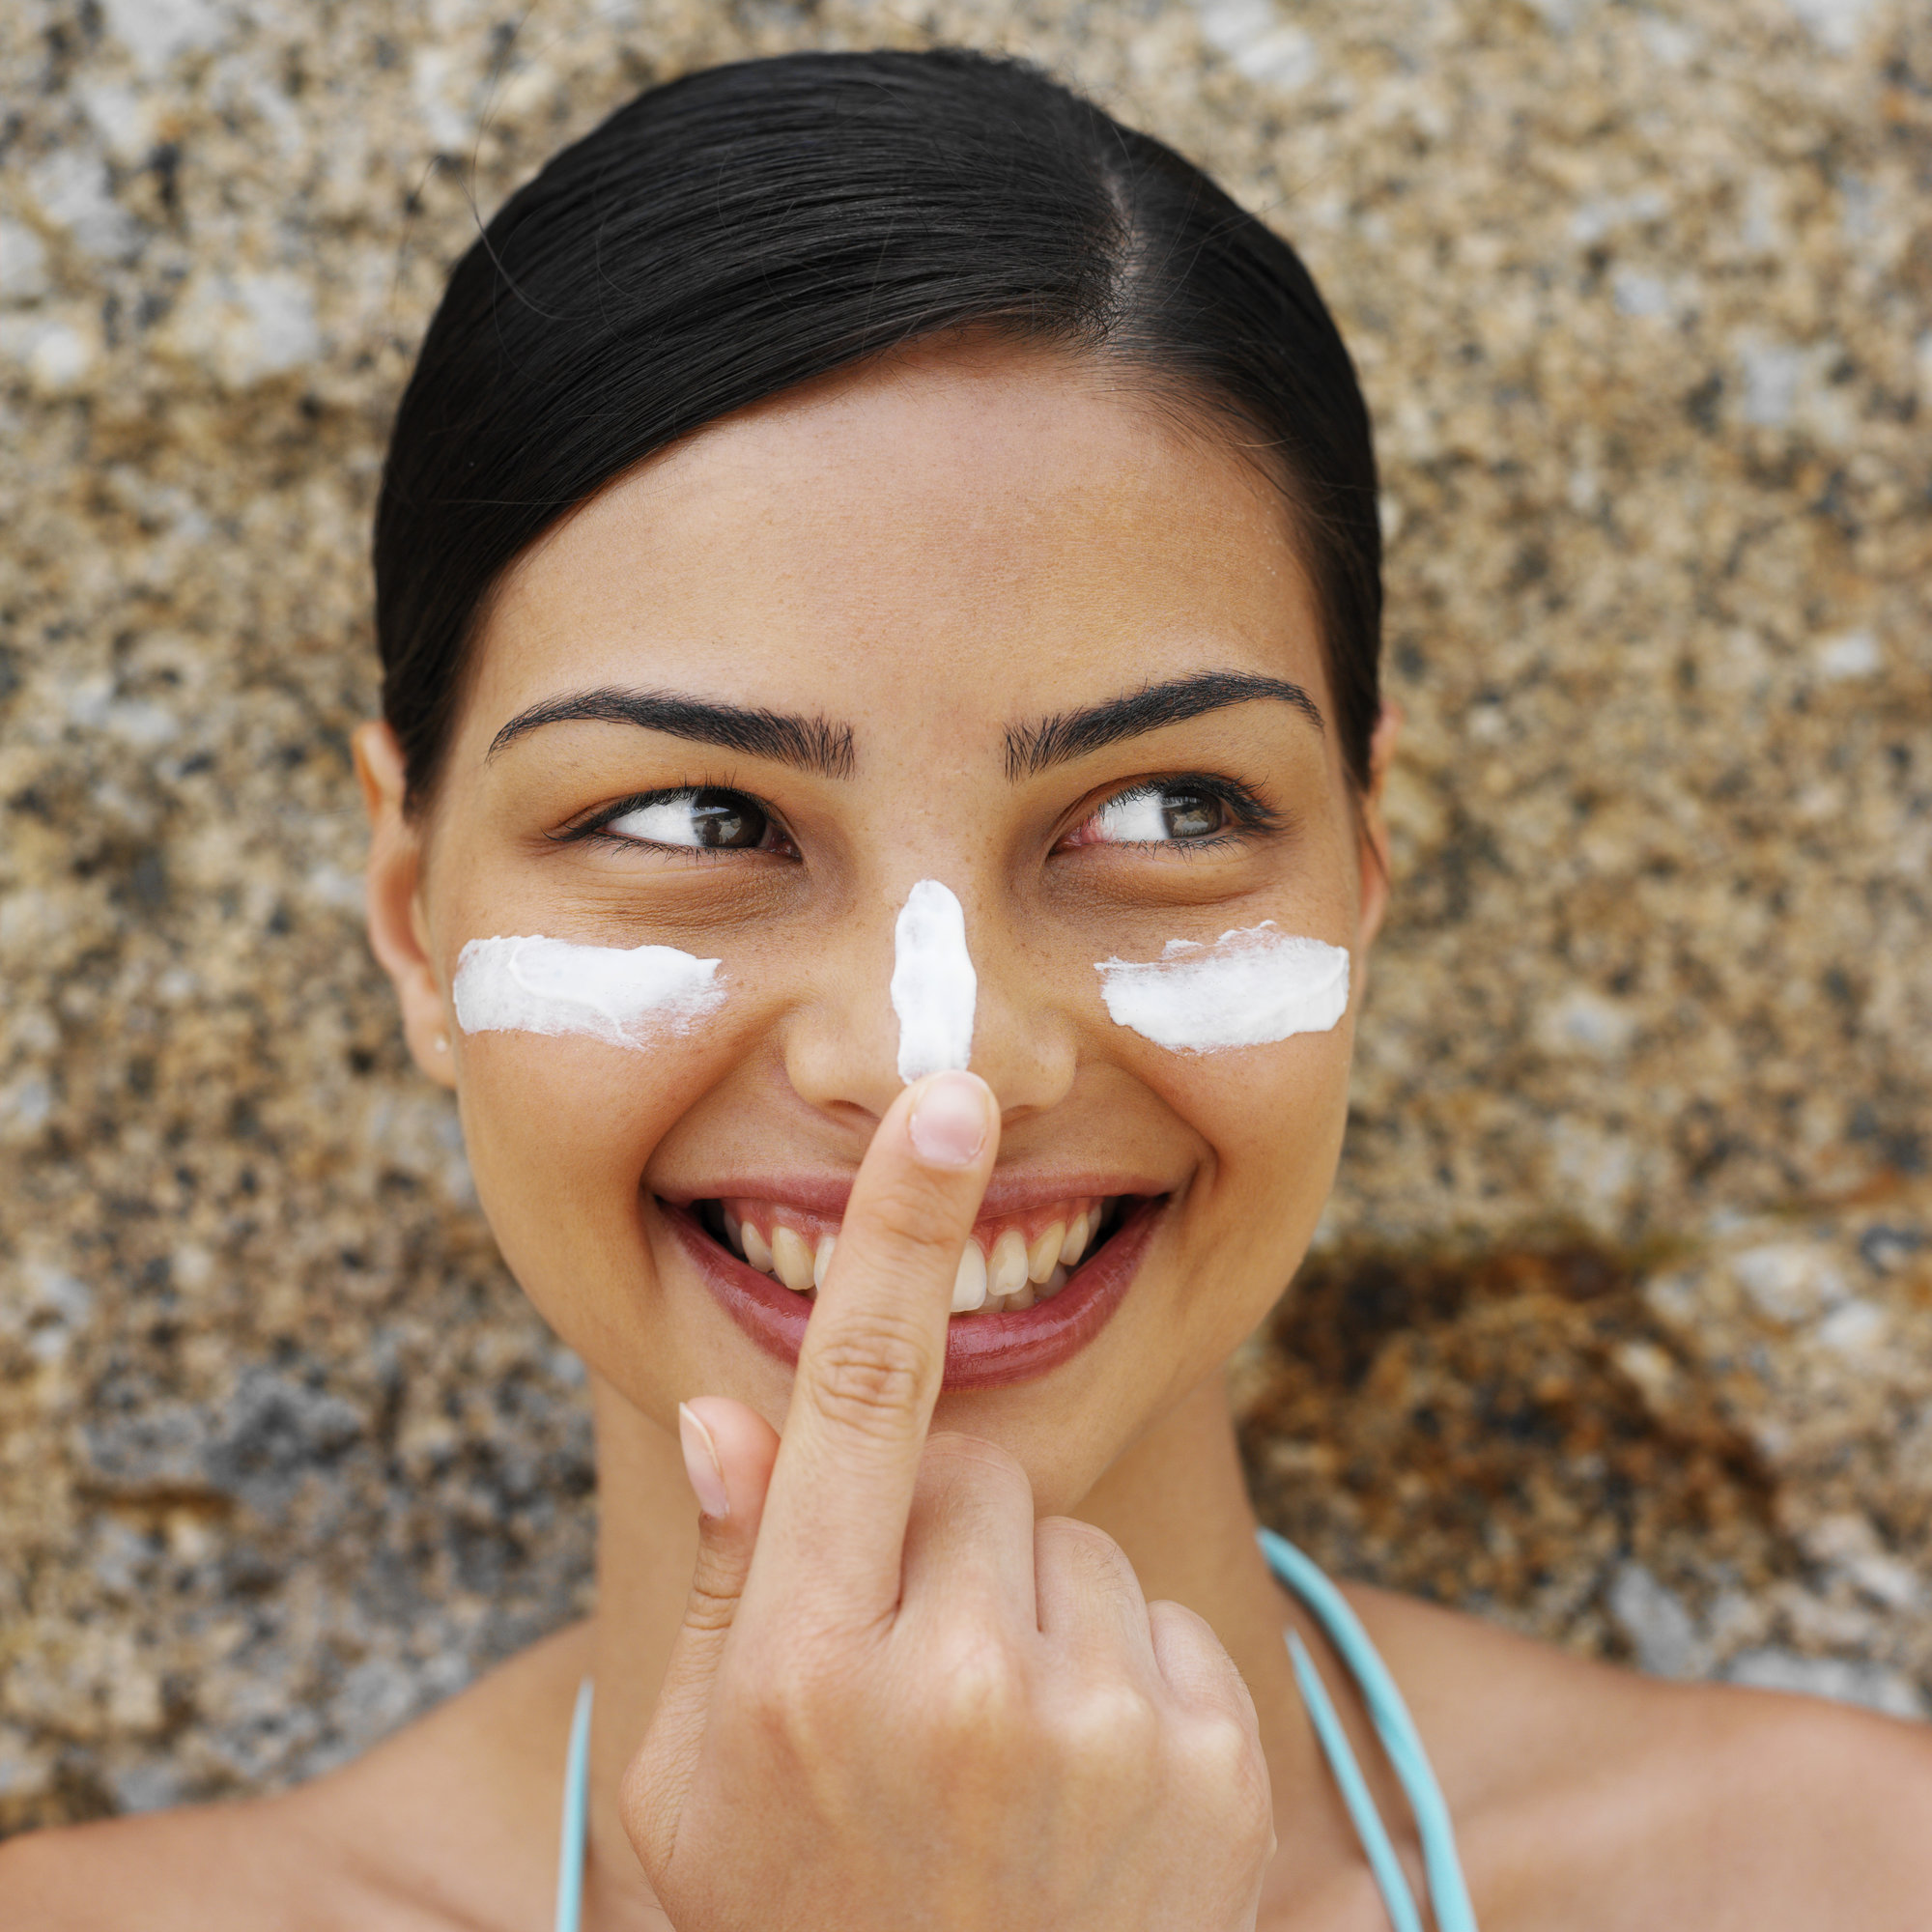 Front view portrait of a woman applying sun cream to her face